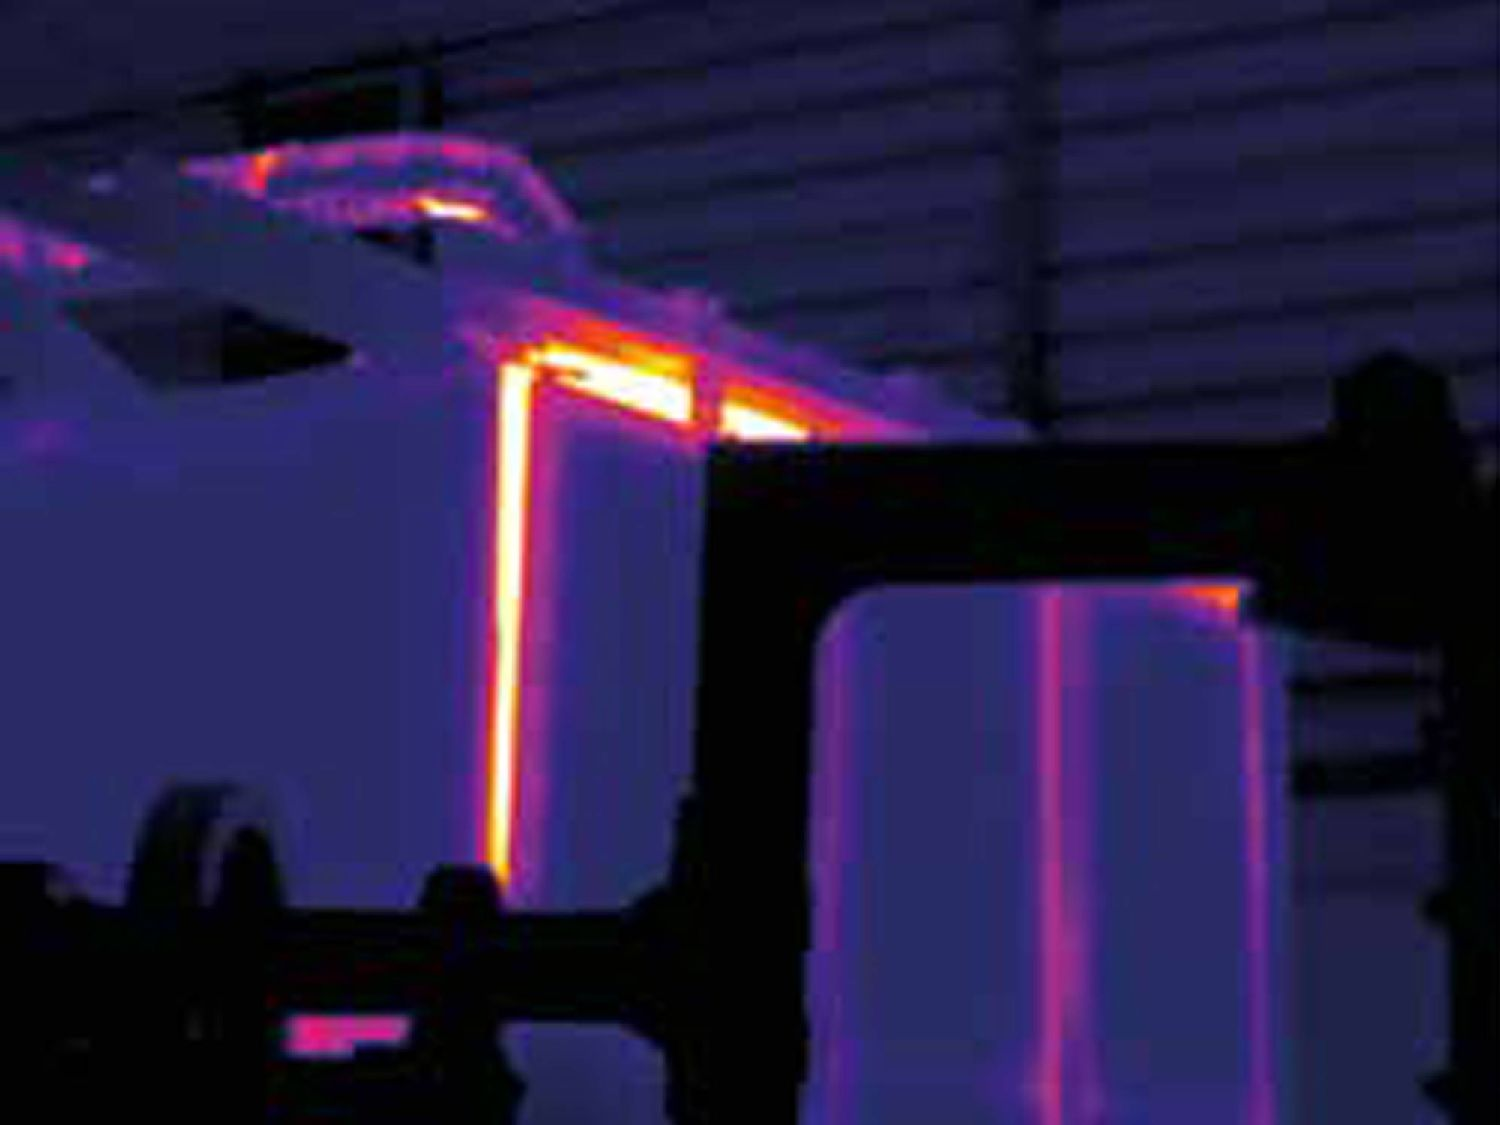 thermography-industry-furnace-2000x1500.jpg